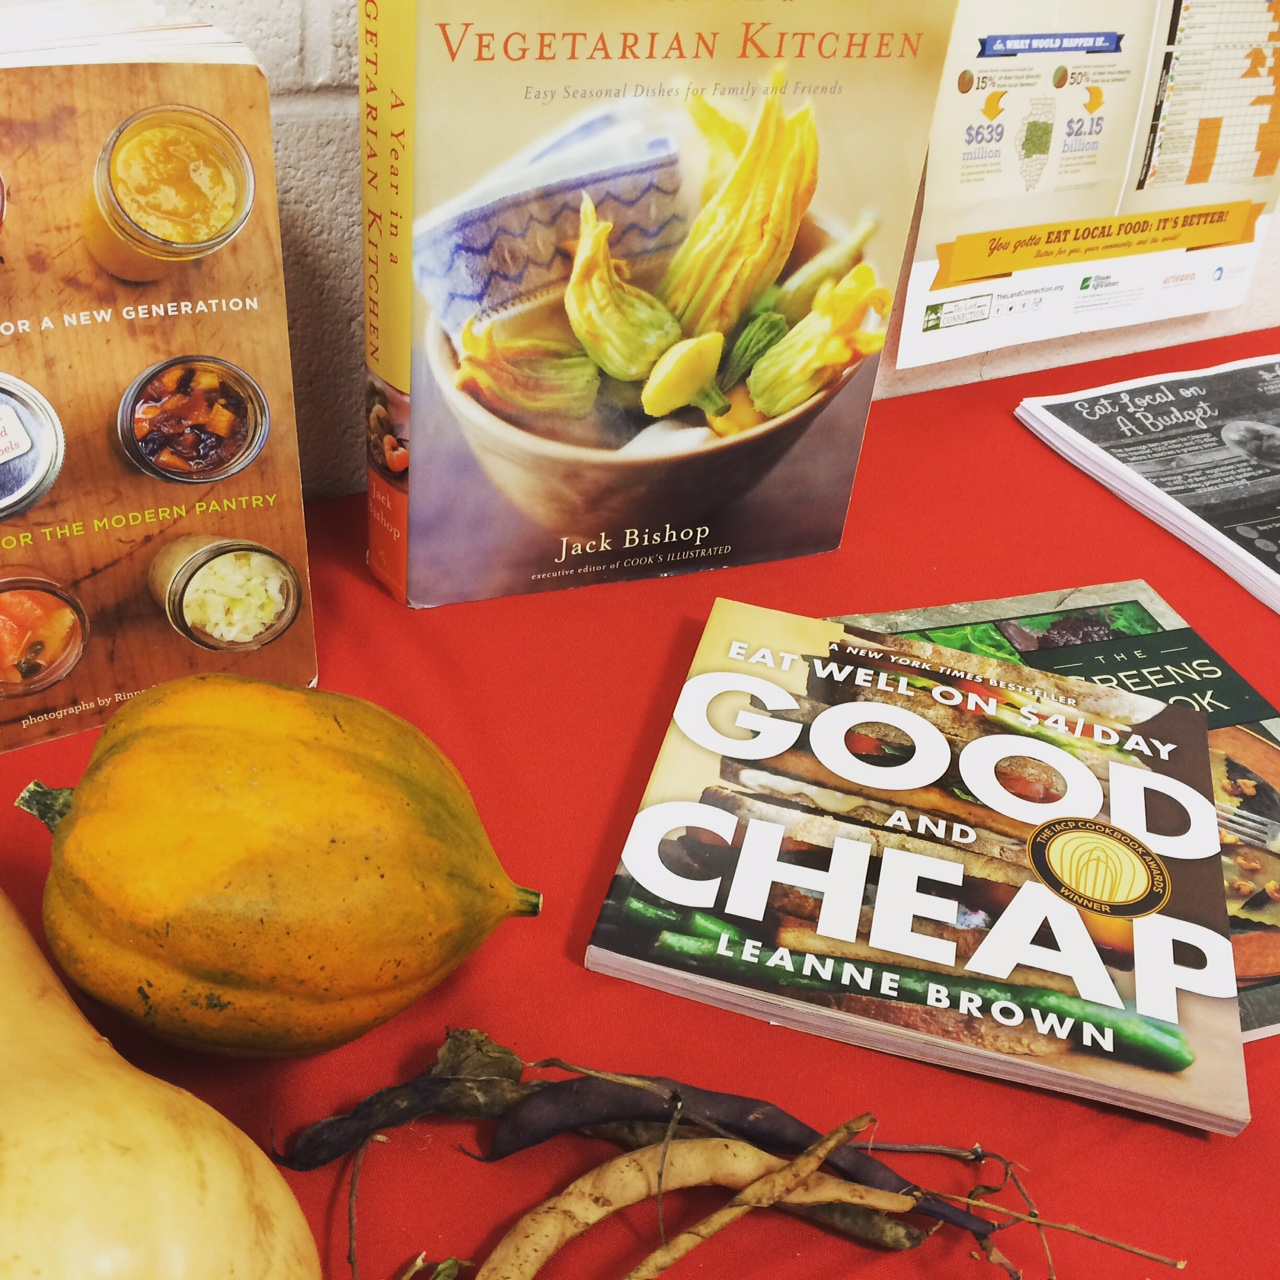 Slow Food's resource table - books on canning, vegetarian eating, and even some seed savers making an appearance.